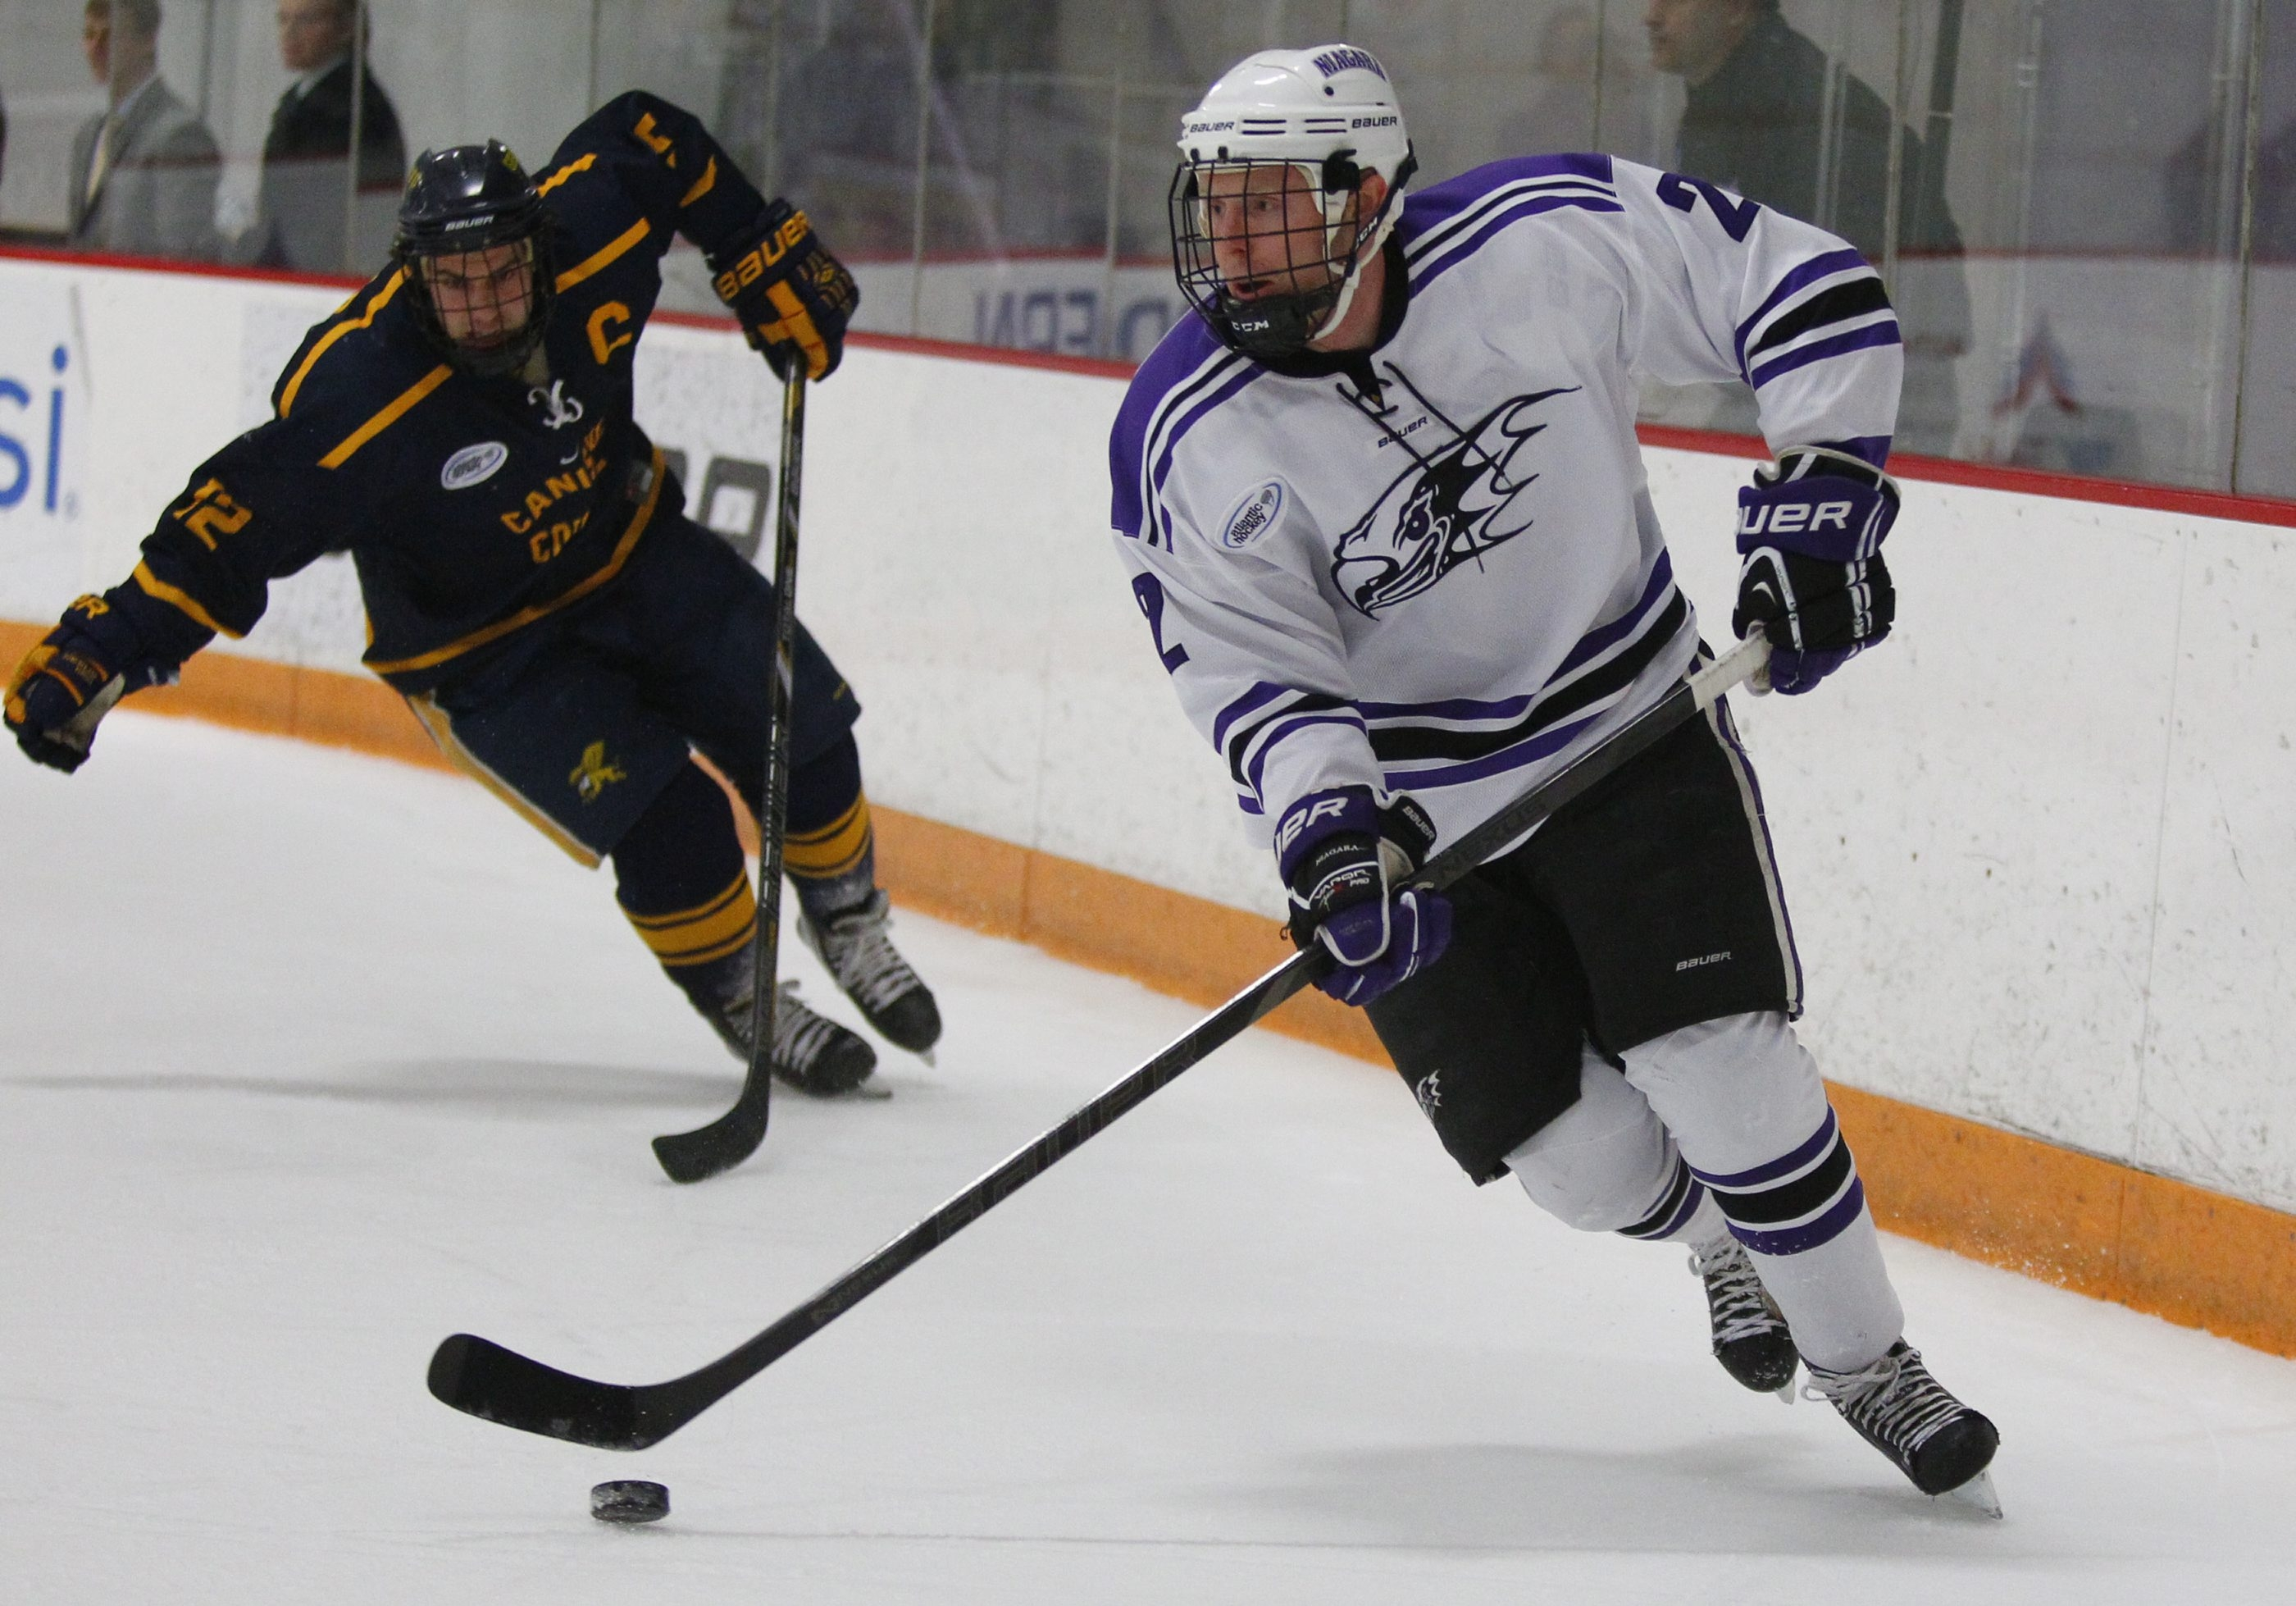 Niagara's Kevin Ryan moves the puck past Canisius player Ryan Bohrer (12) Thursday during their game at Dwyer Arena.